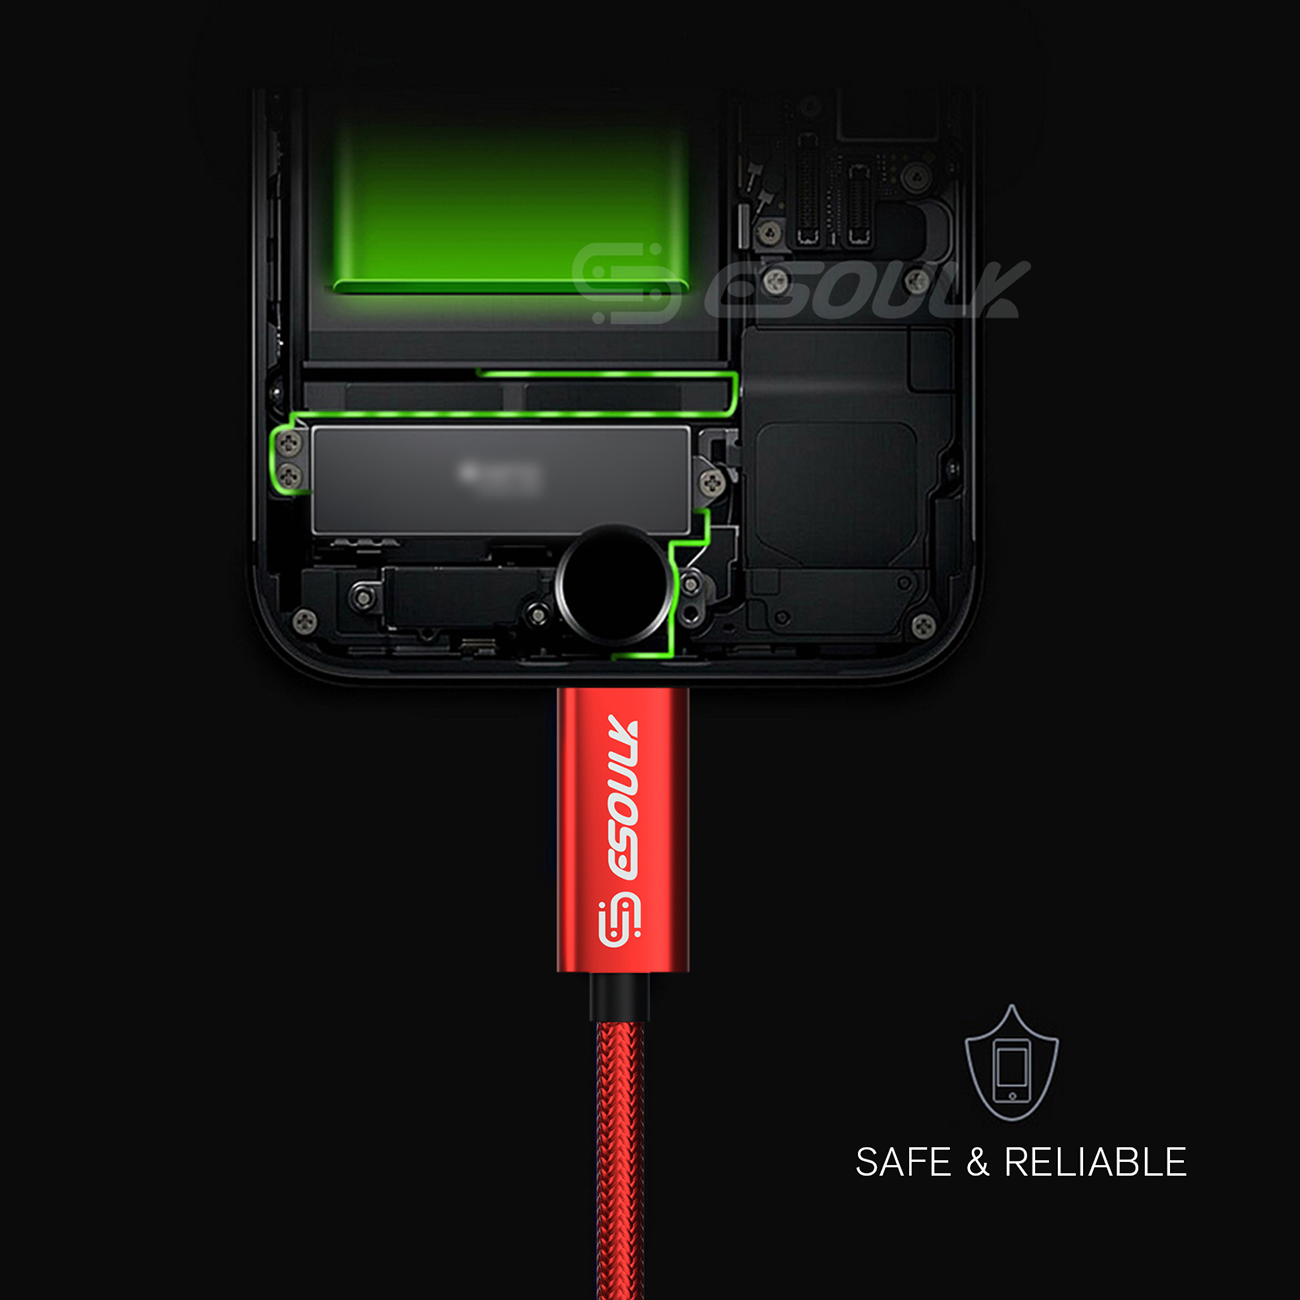 Esoulk 1.7A 10FT USB Cable For 8 PIN In Red